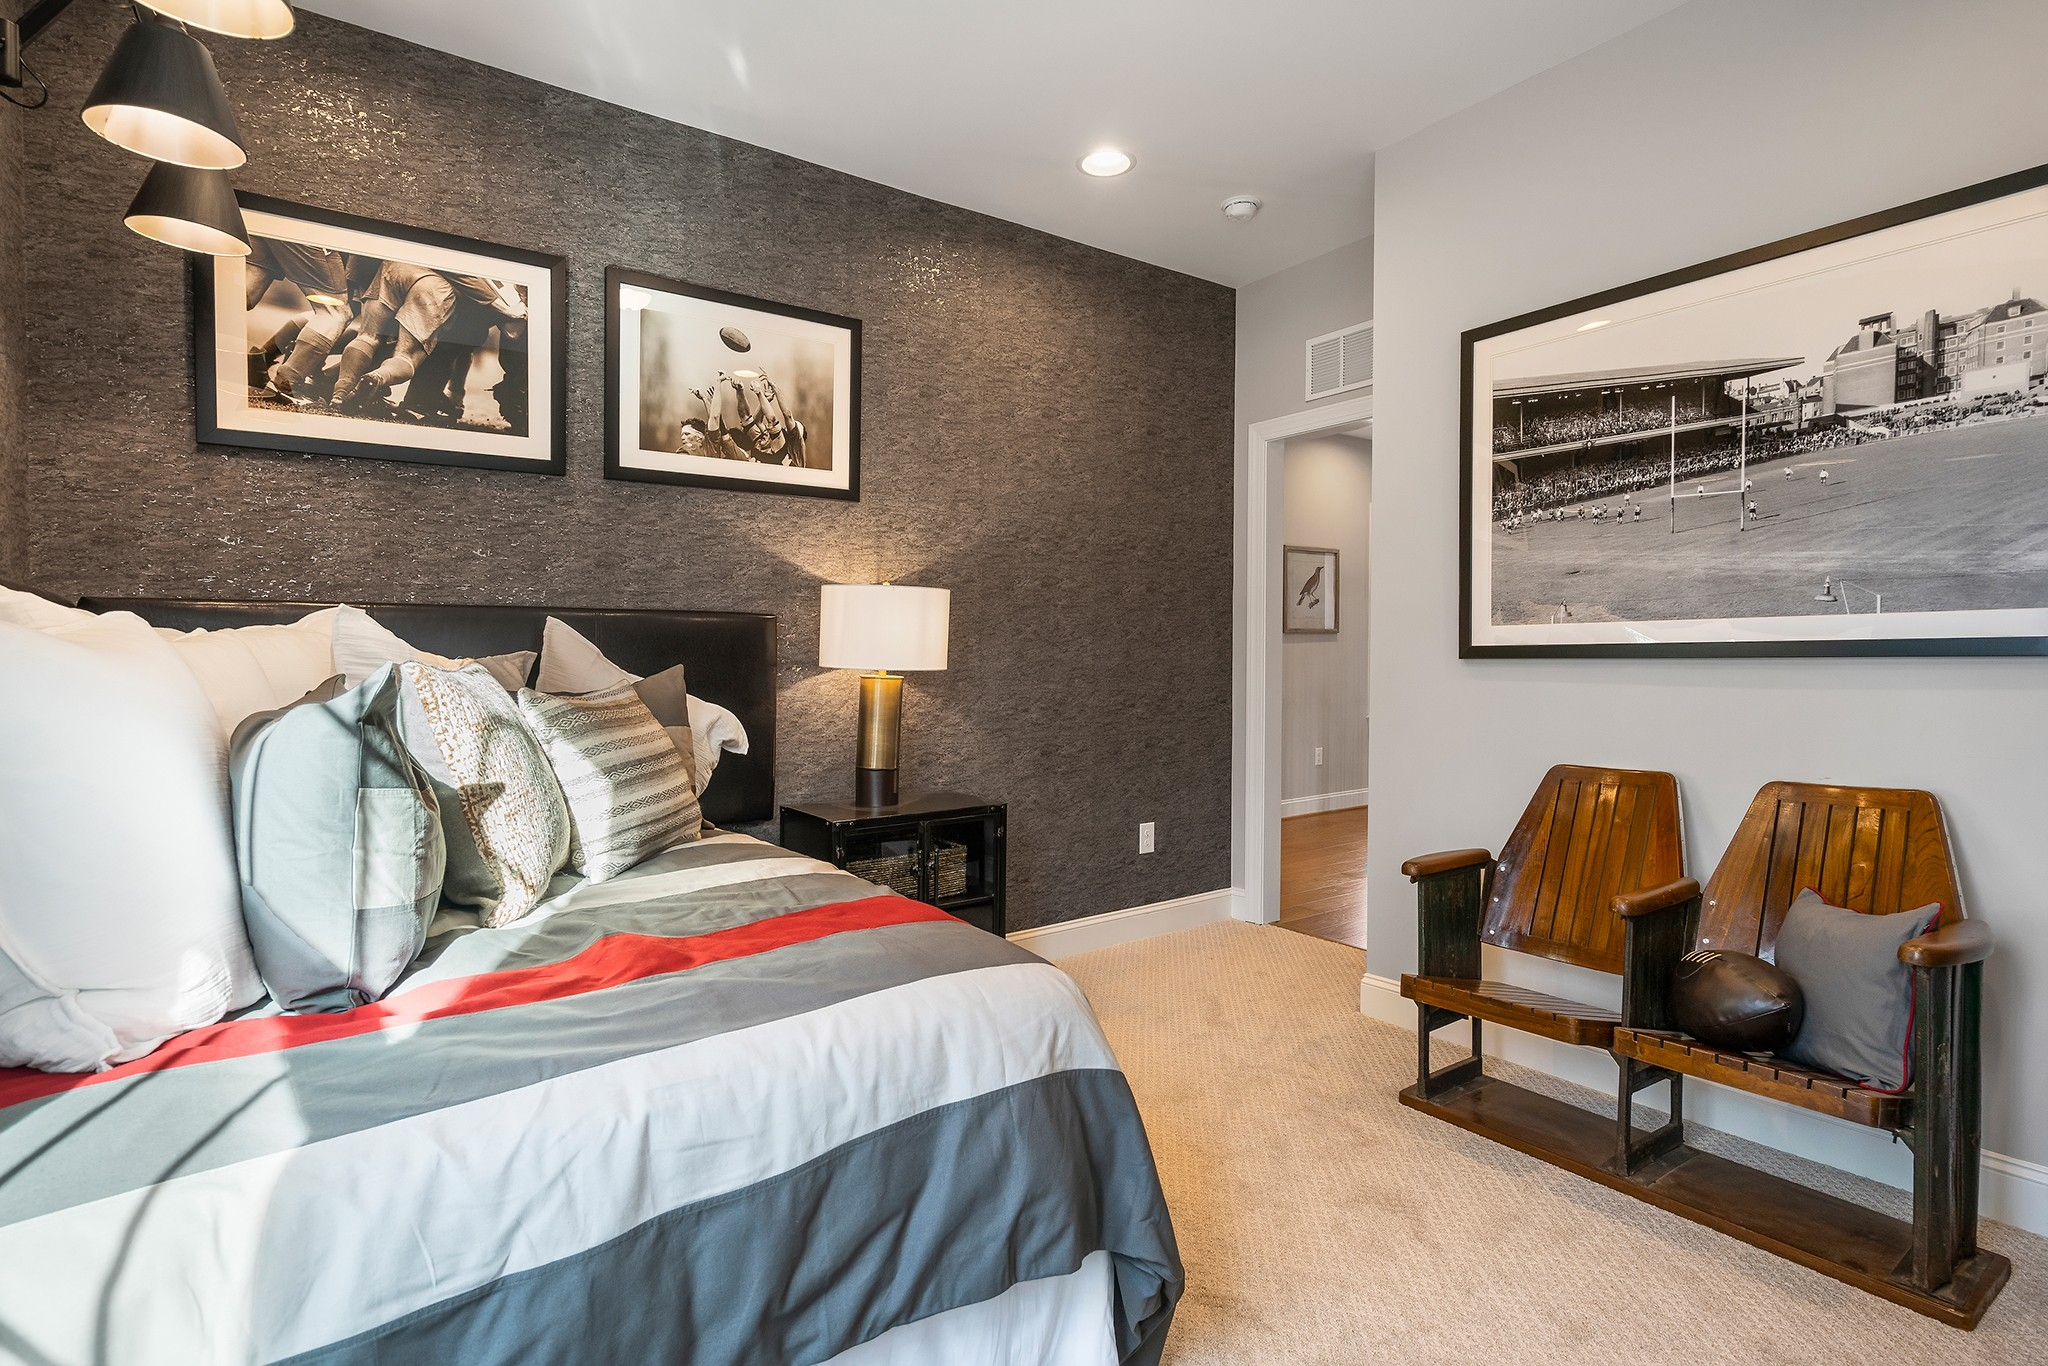 Ballentine Place, The Edenton Model, Royal Oaks a Division of Mattamy Homes, Bedroom